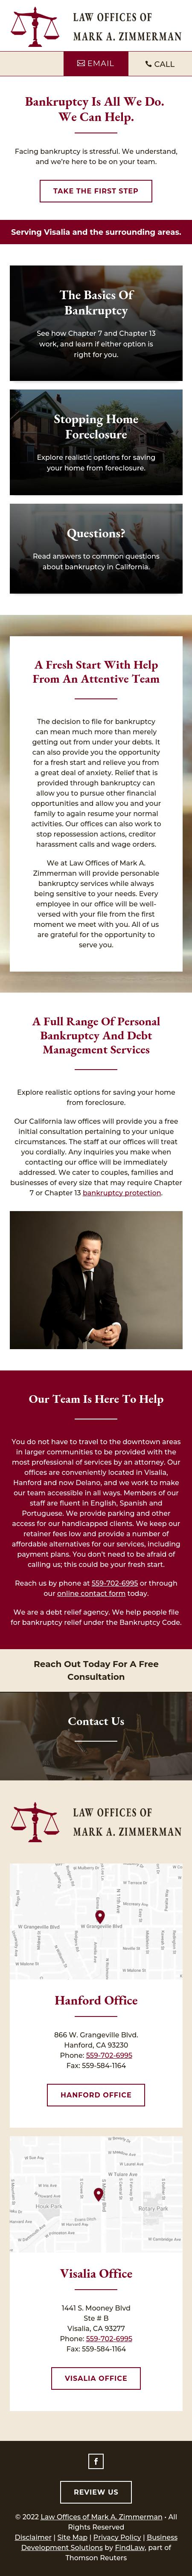 Law Offices of Mark A. Zimmerman - Delano CA Lawyers